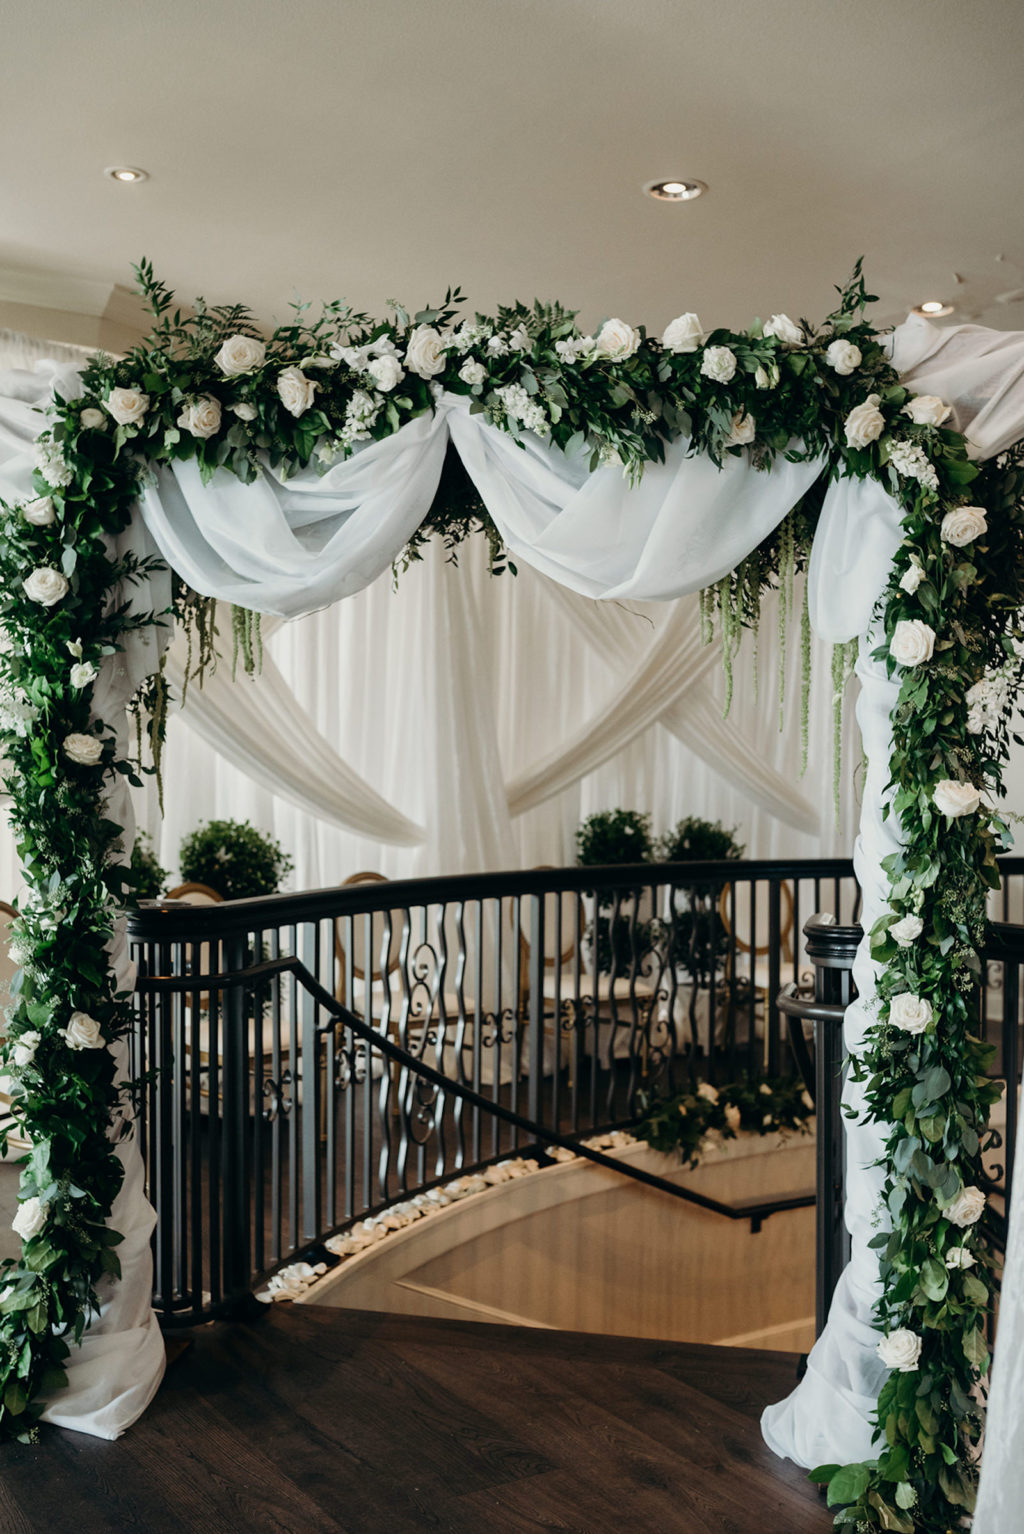 Elegant Timeless Wedding Ceremony Decor, Arch with White Linen Draping, Greenery Garland with White Roses on Top of Staircase   Tampa Bay Wedding Venue Westshore Yacht Club